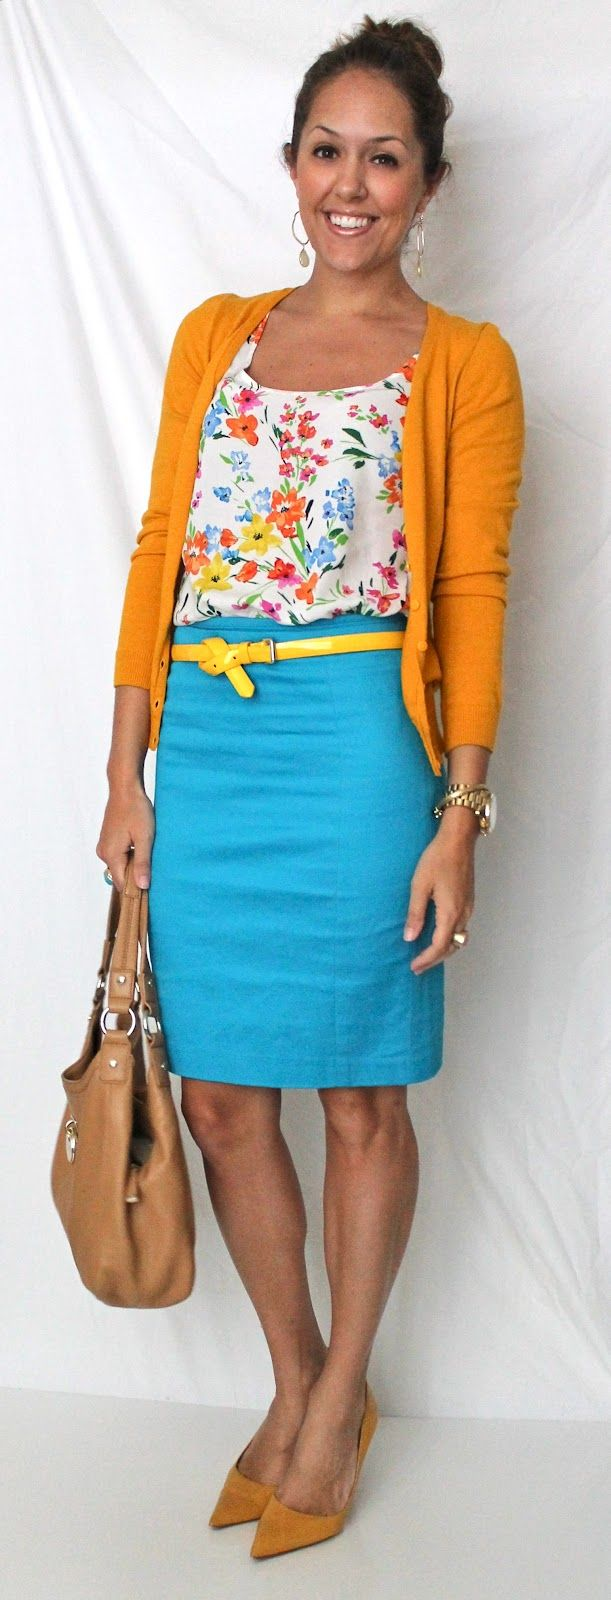 love the floral top with the skirt.